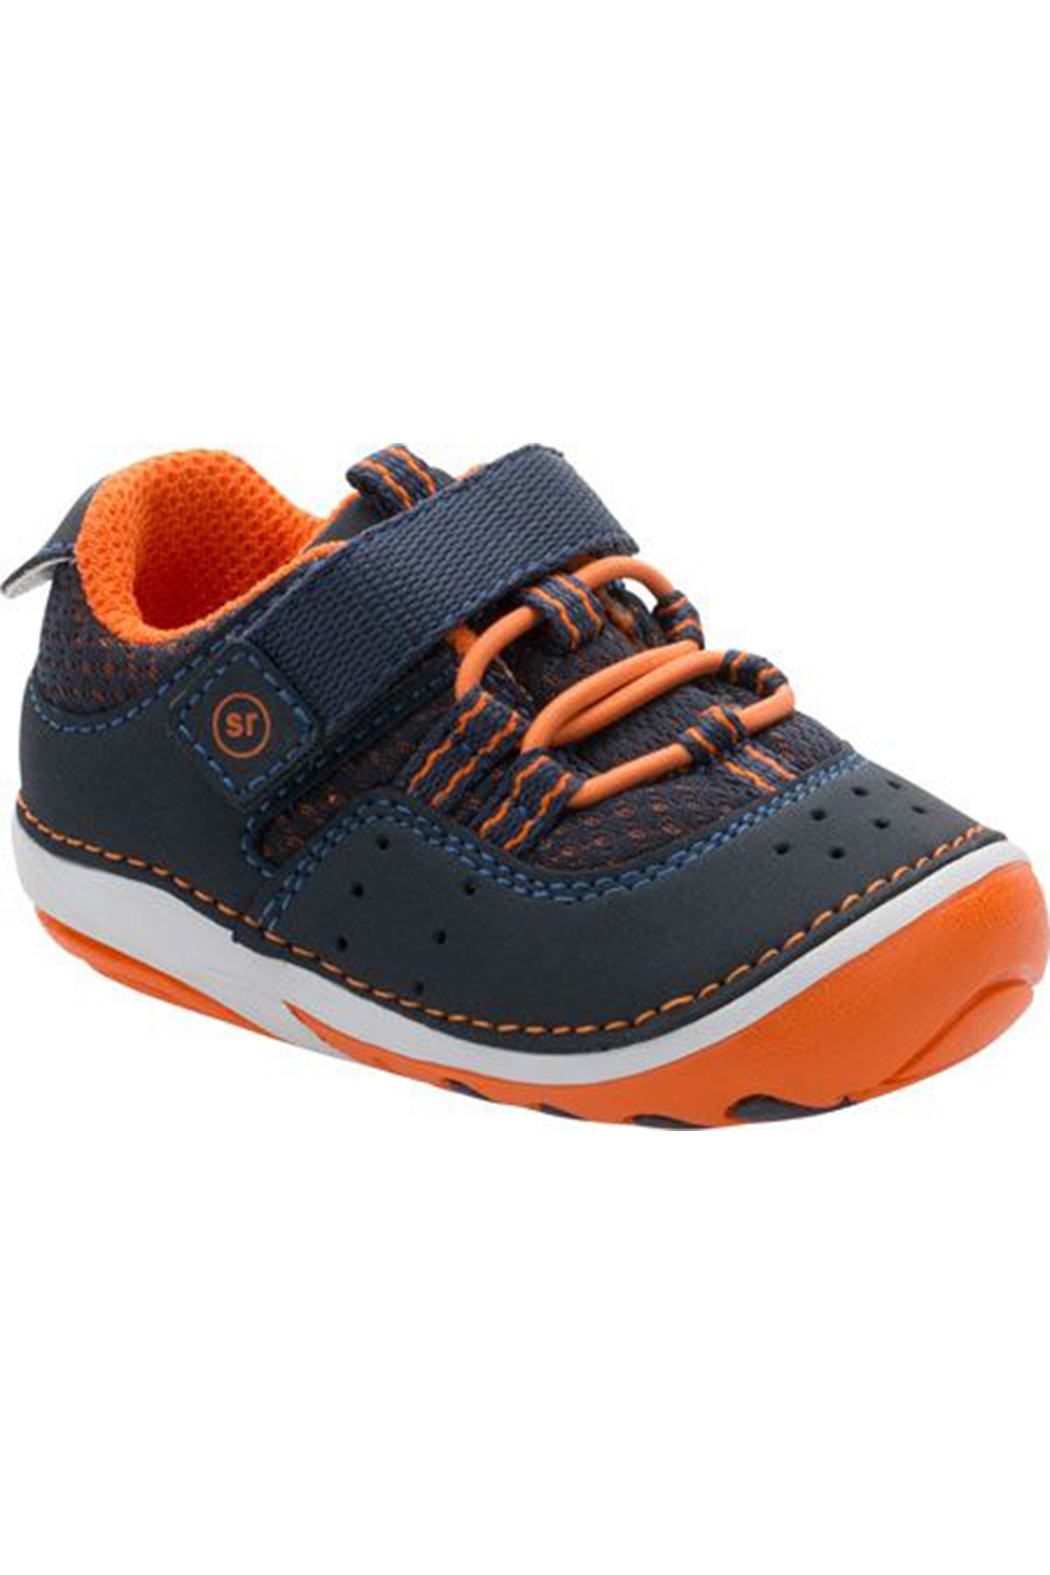 Stride Rite Amos Smart Motion Sneaker - Main Image